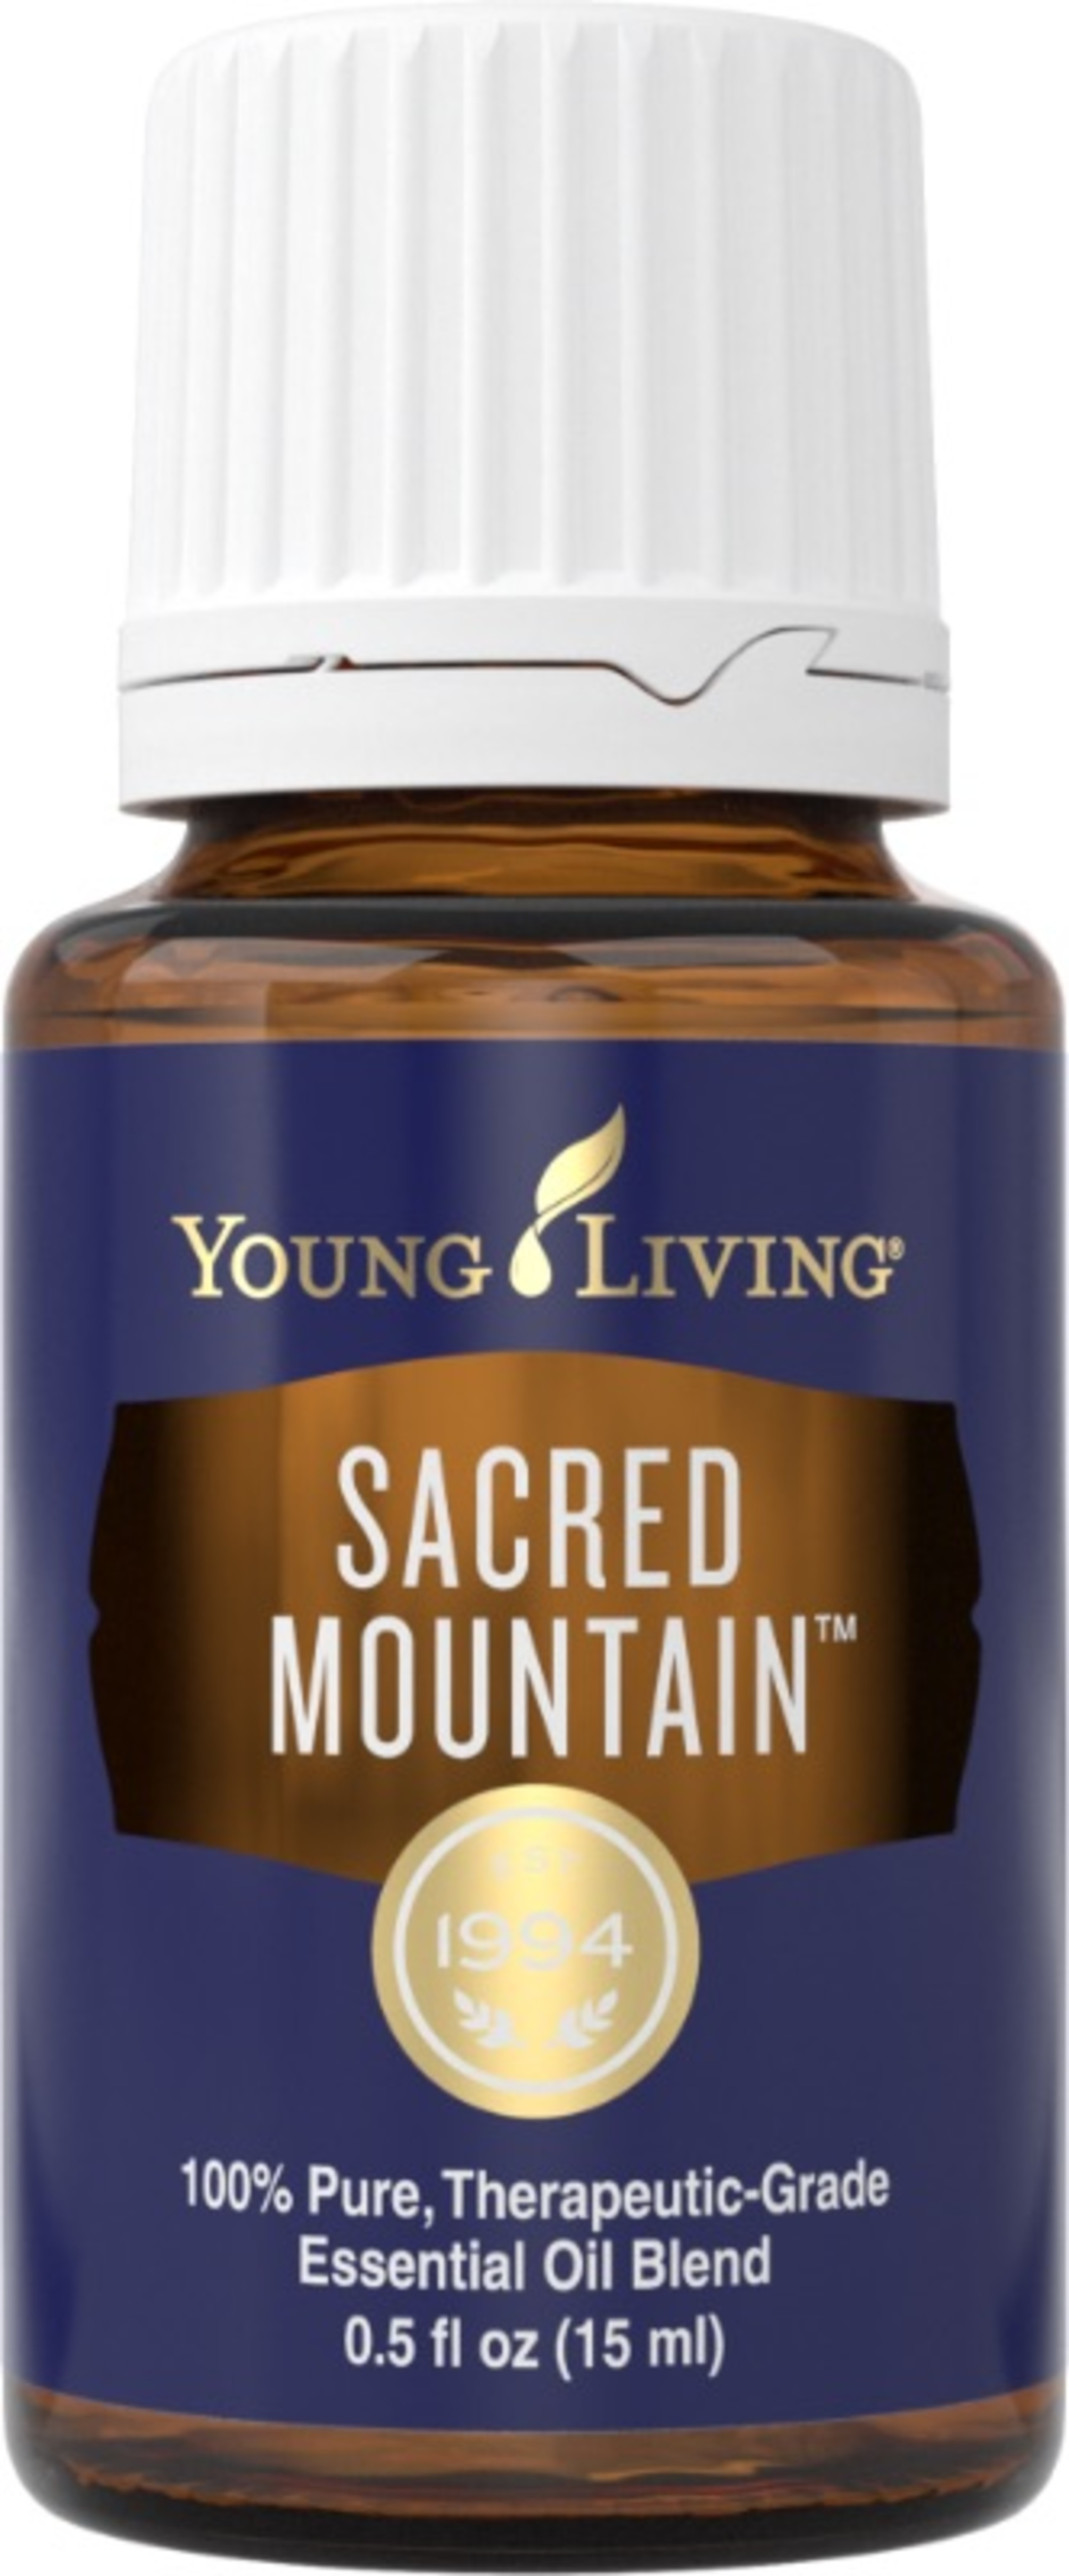 Sacred Mountain Essential Oil